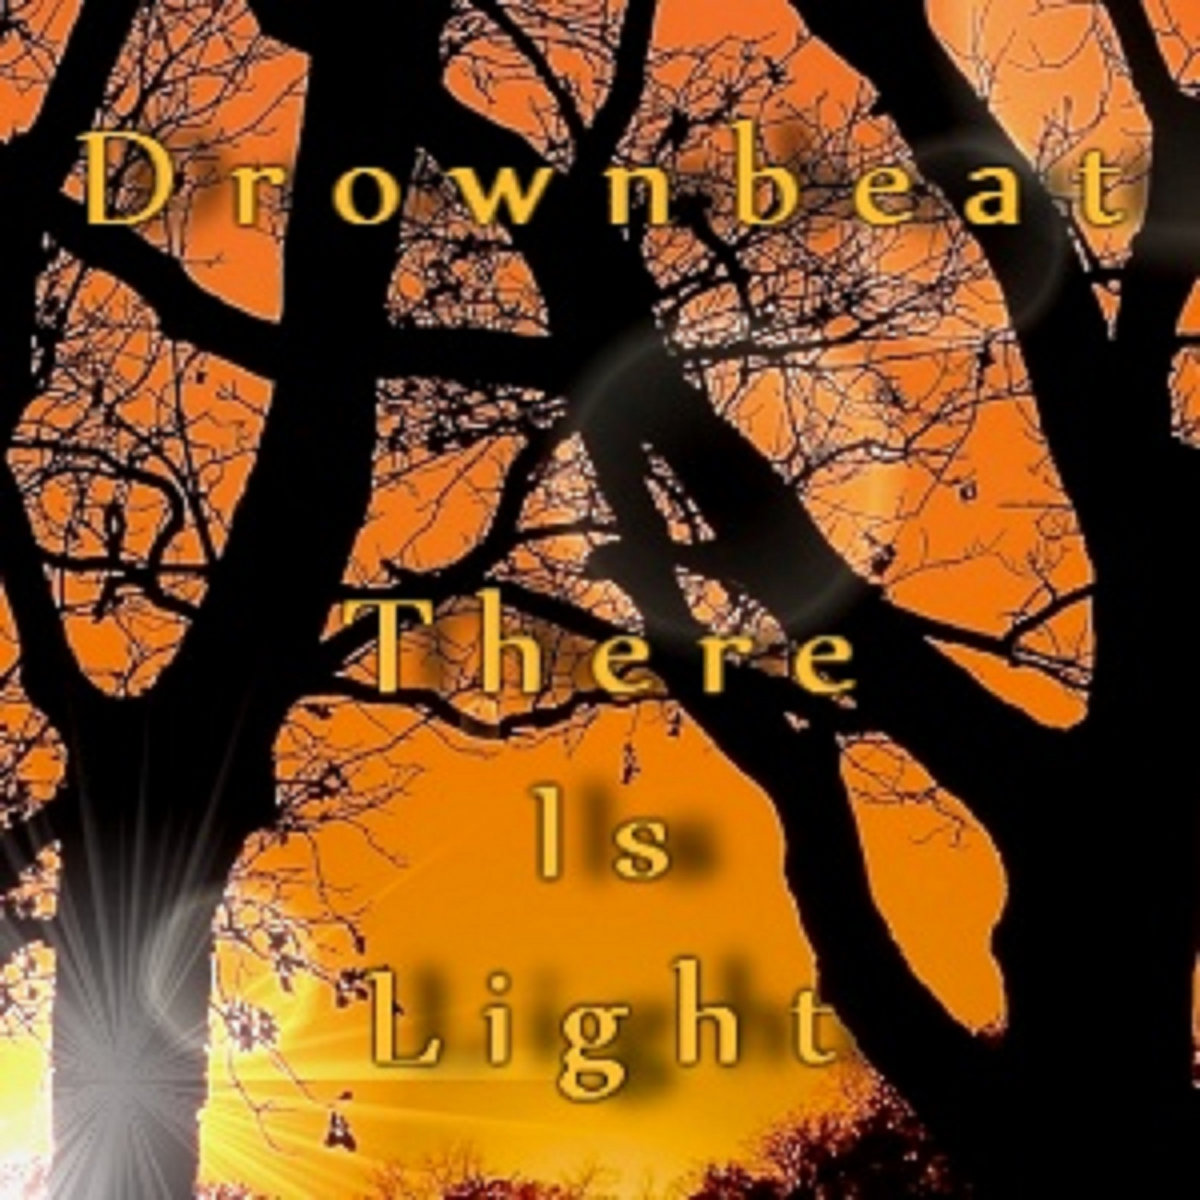 There Is Light by Drownbeat